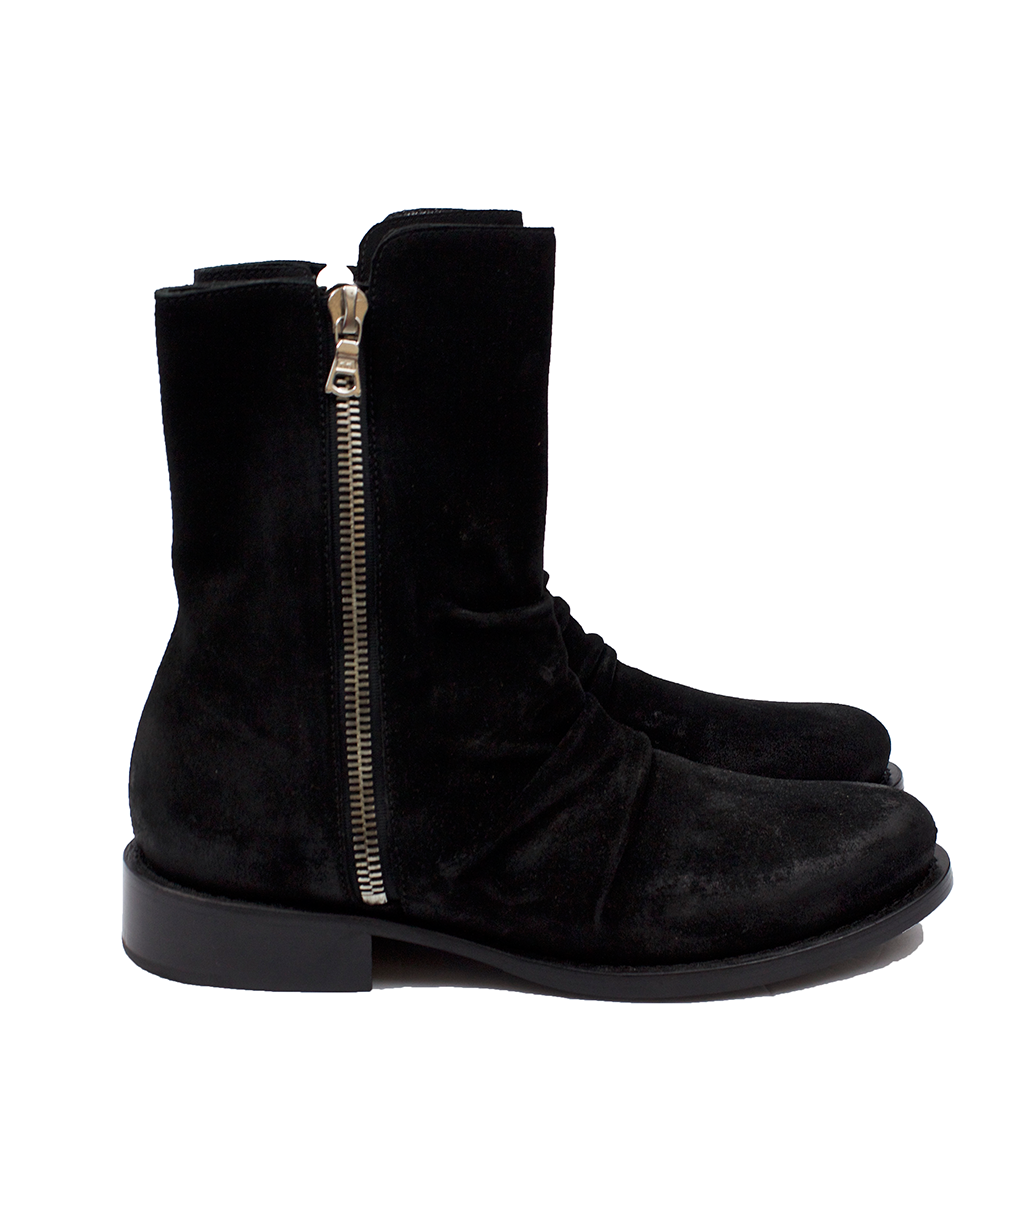 Black Waxed Suede Stack Chelsea Boots   Products   Pinterest   Products